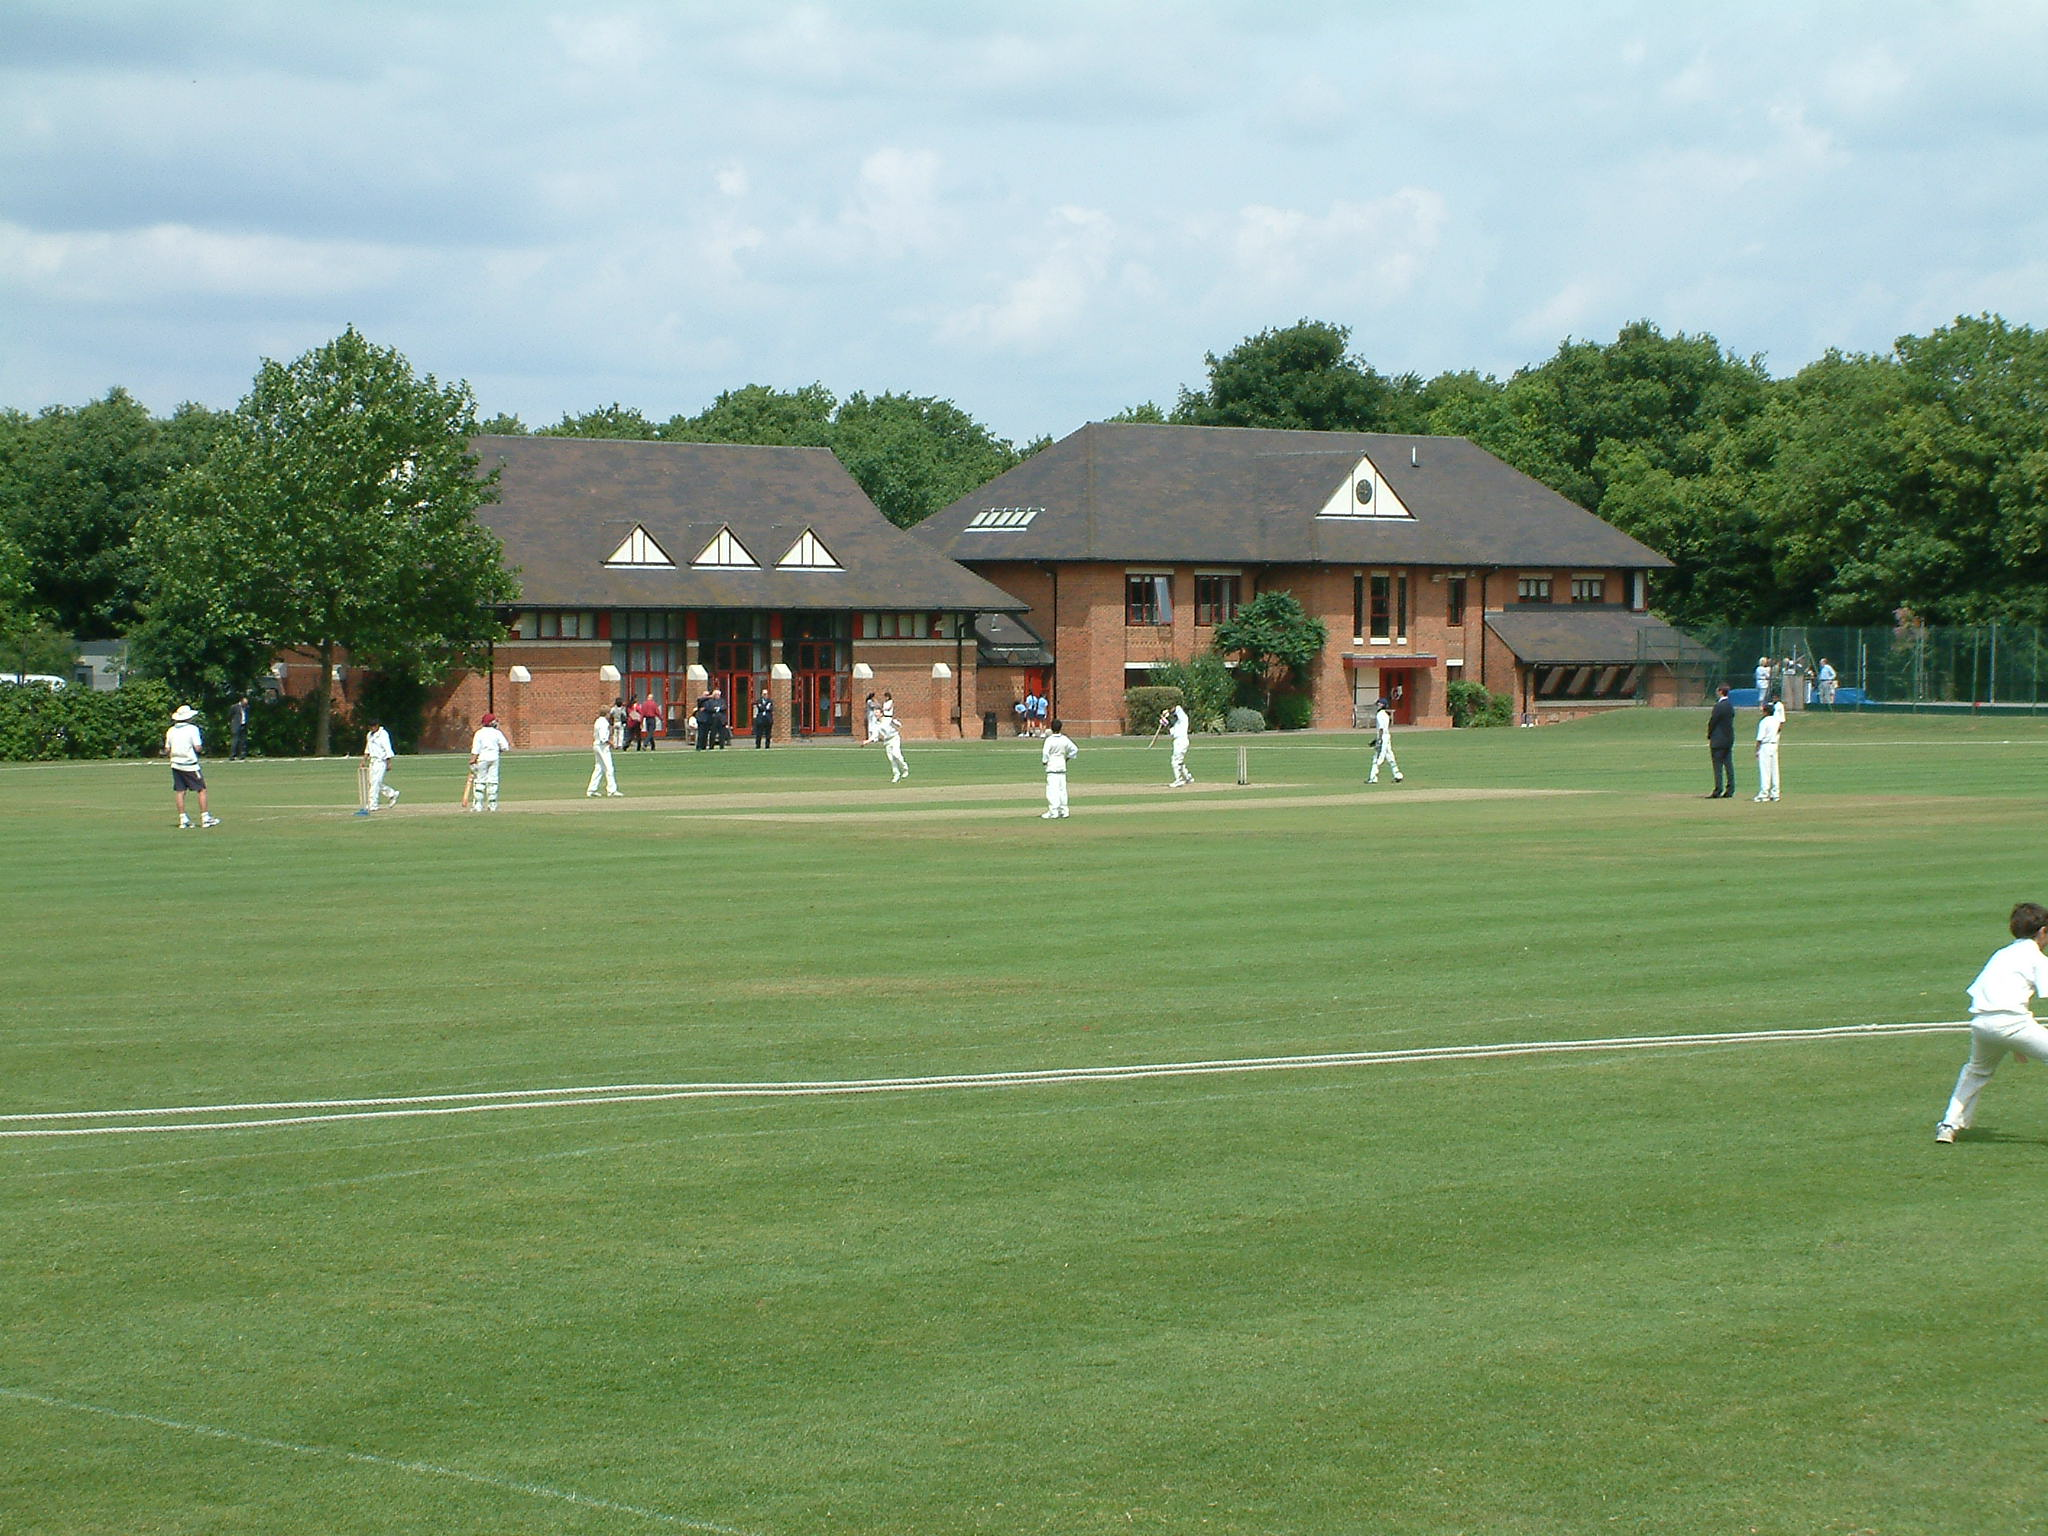 File:Bancroft's School cricket pitch.jpg - Wikimedia Commons